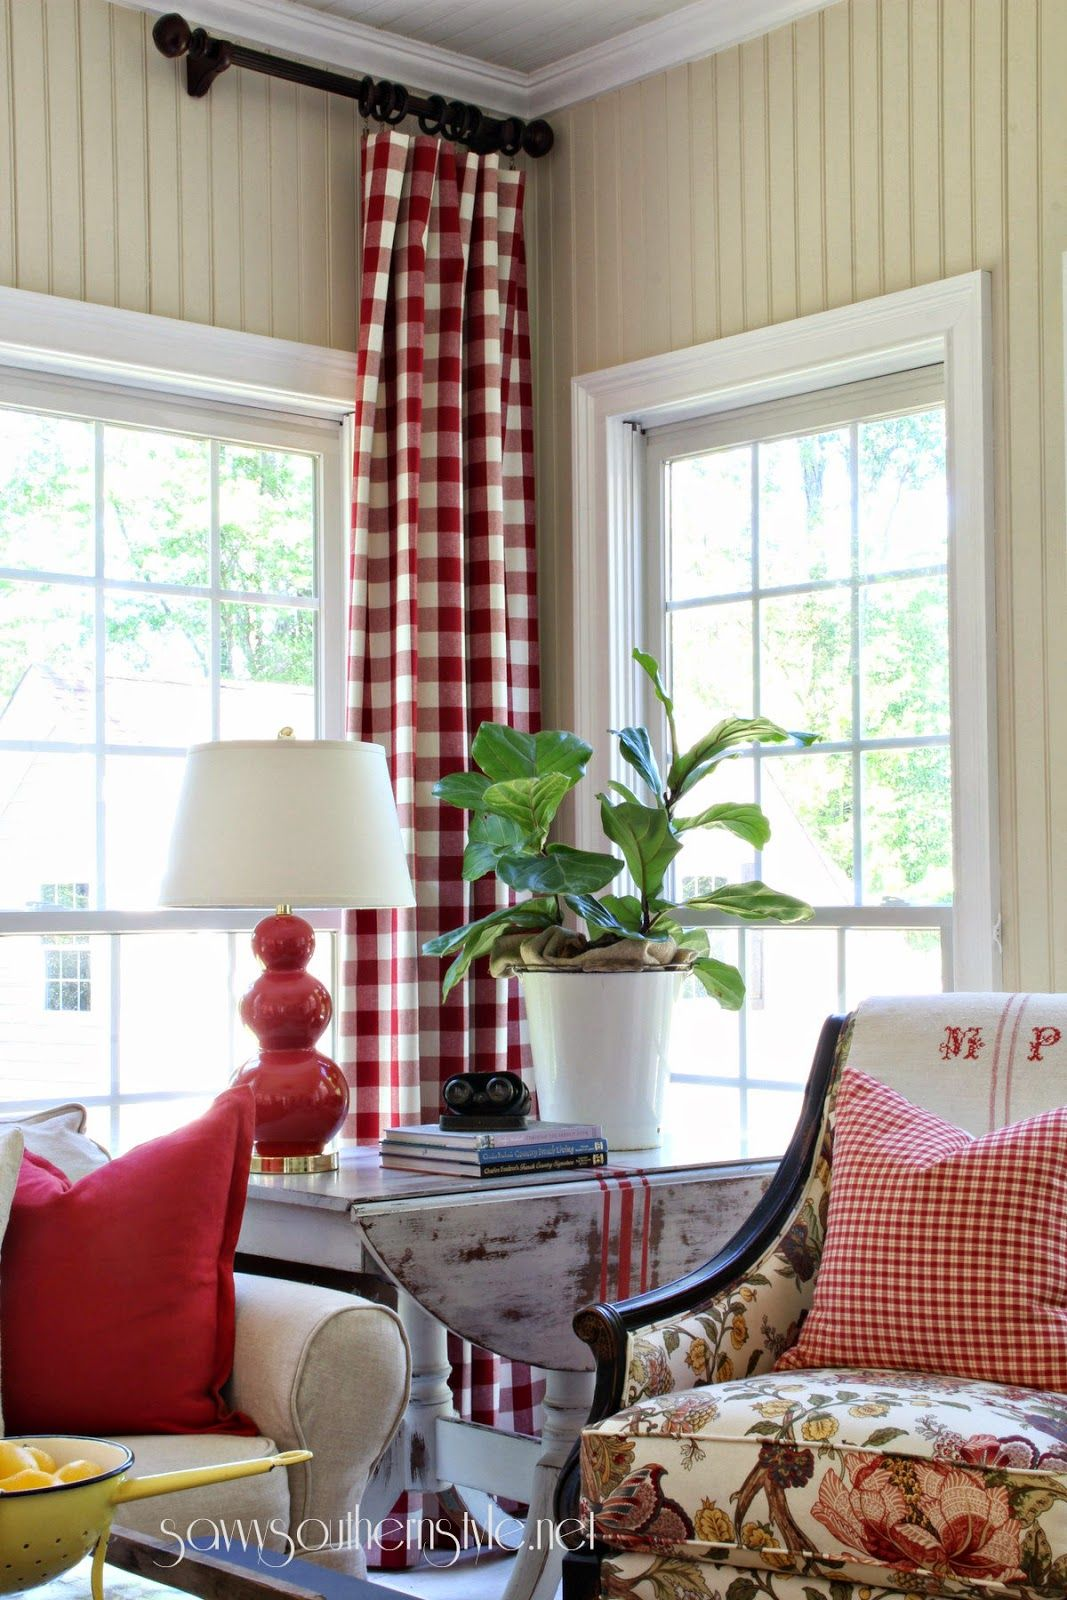 Window treatment ideas for a sunroom  savvy southern style the sun room spring  amazing tour this